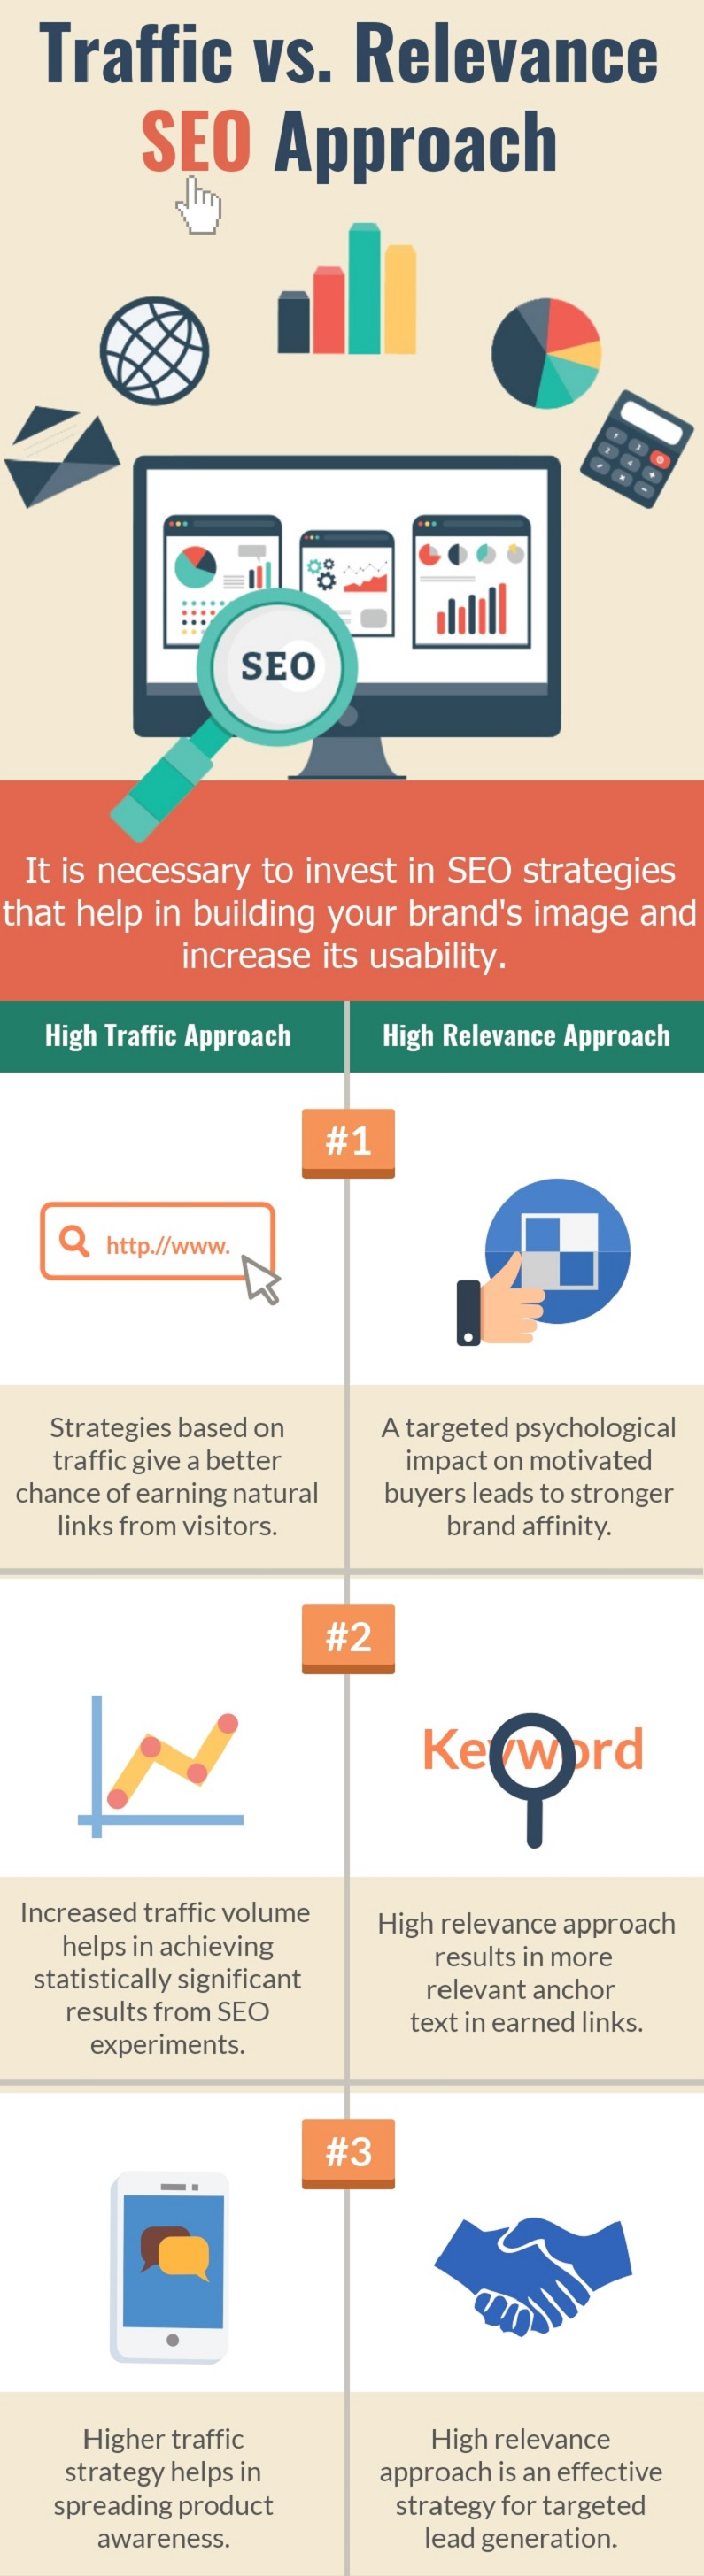 Traffic-vs-Relevance-SEO-Approach